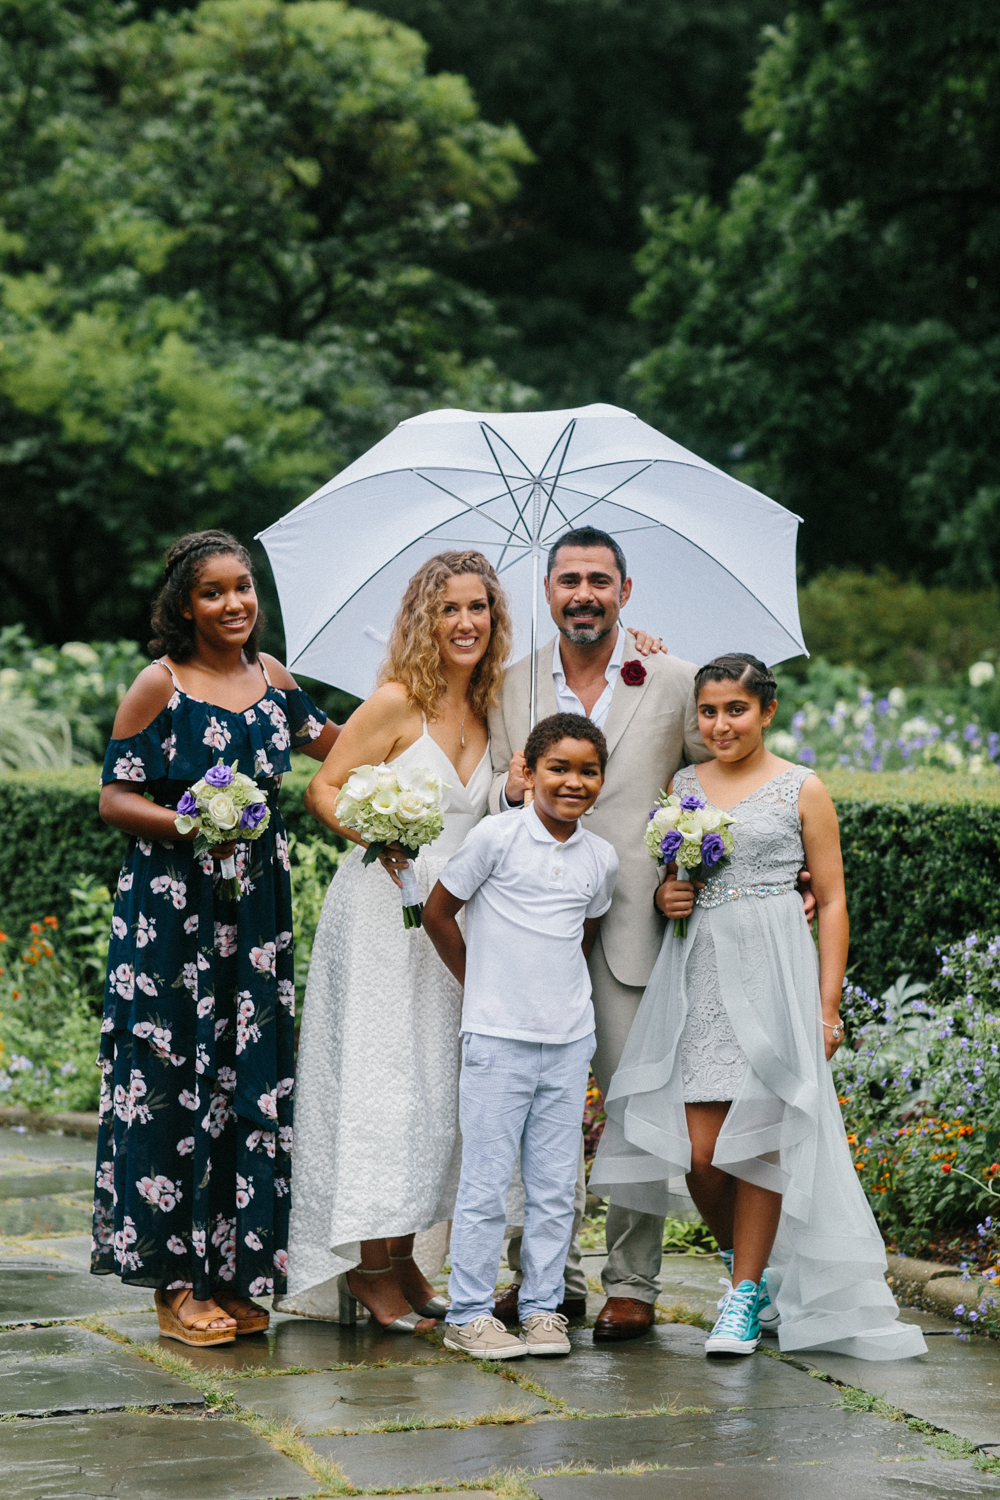 Photograph of NYC bride and groom with family